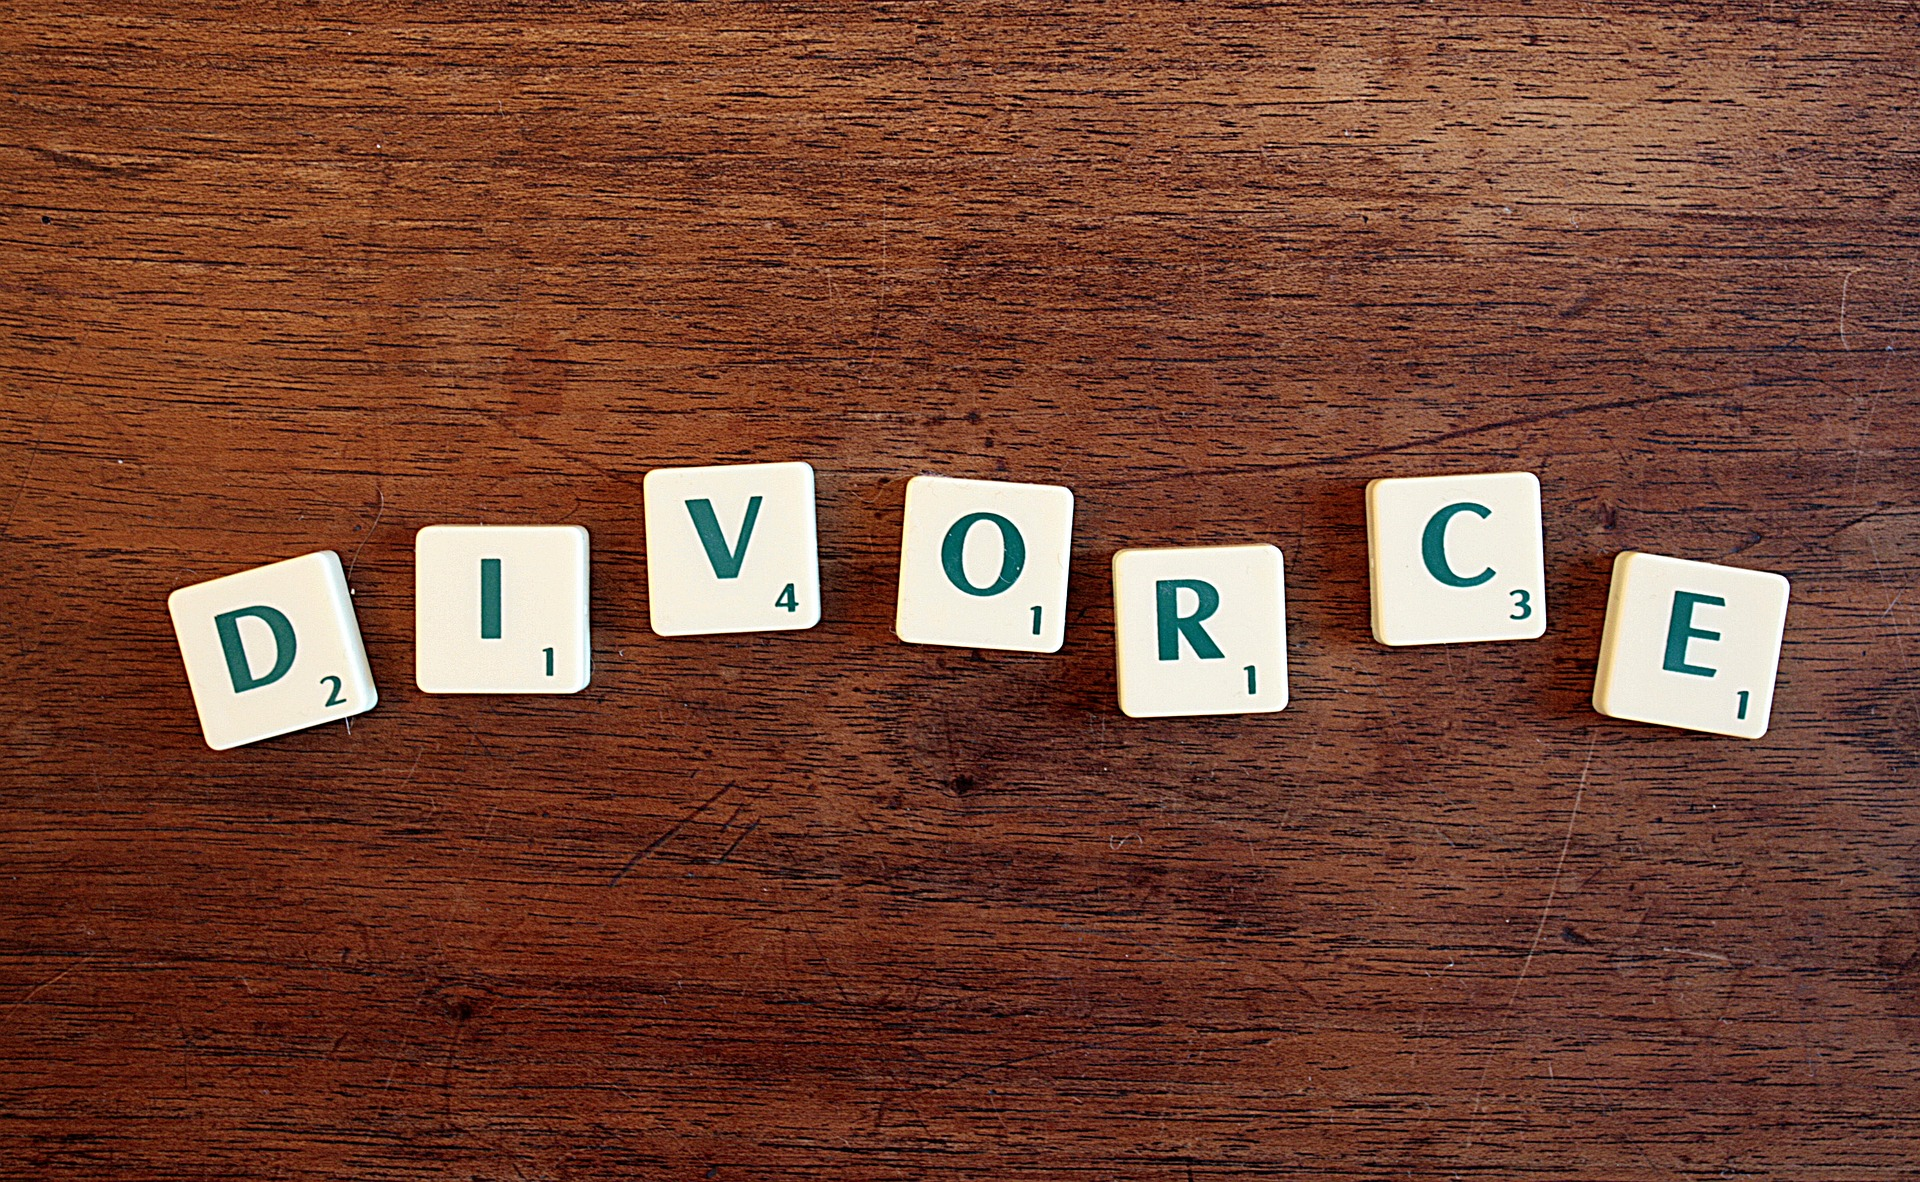 Outrageous Reasons for Divorce facts